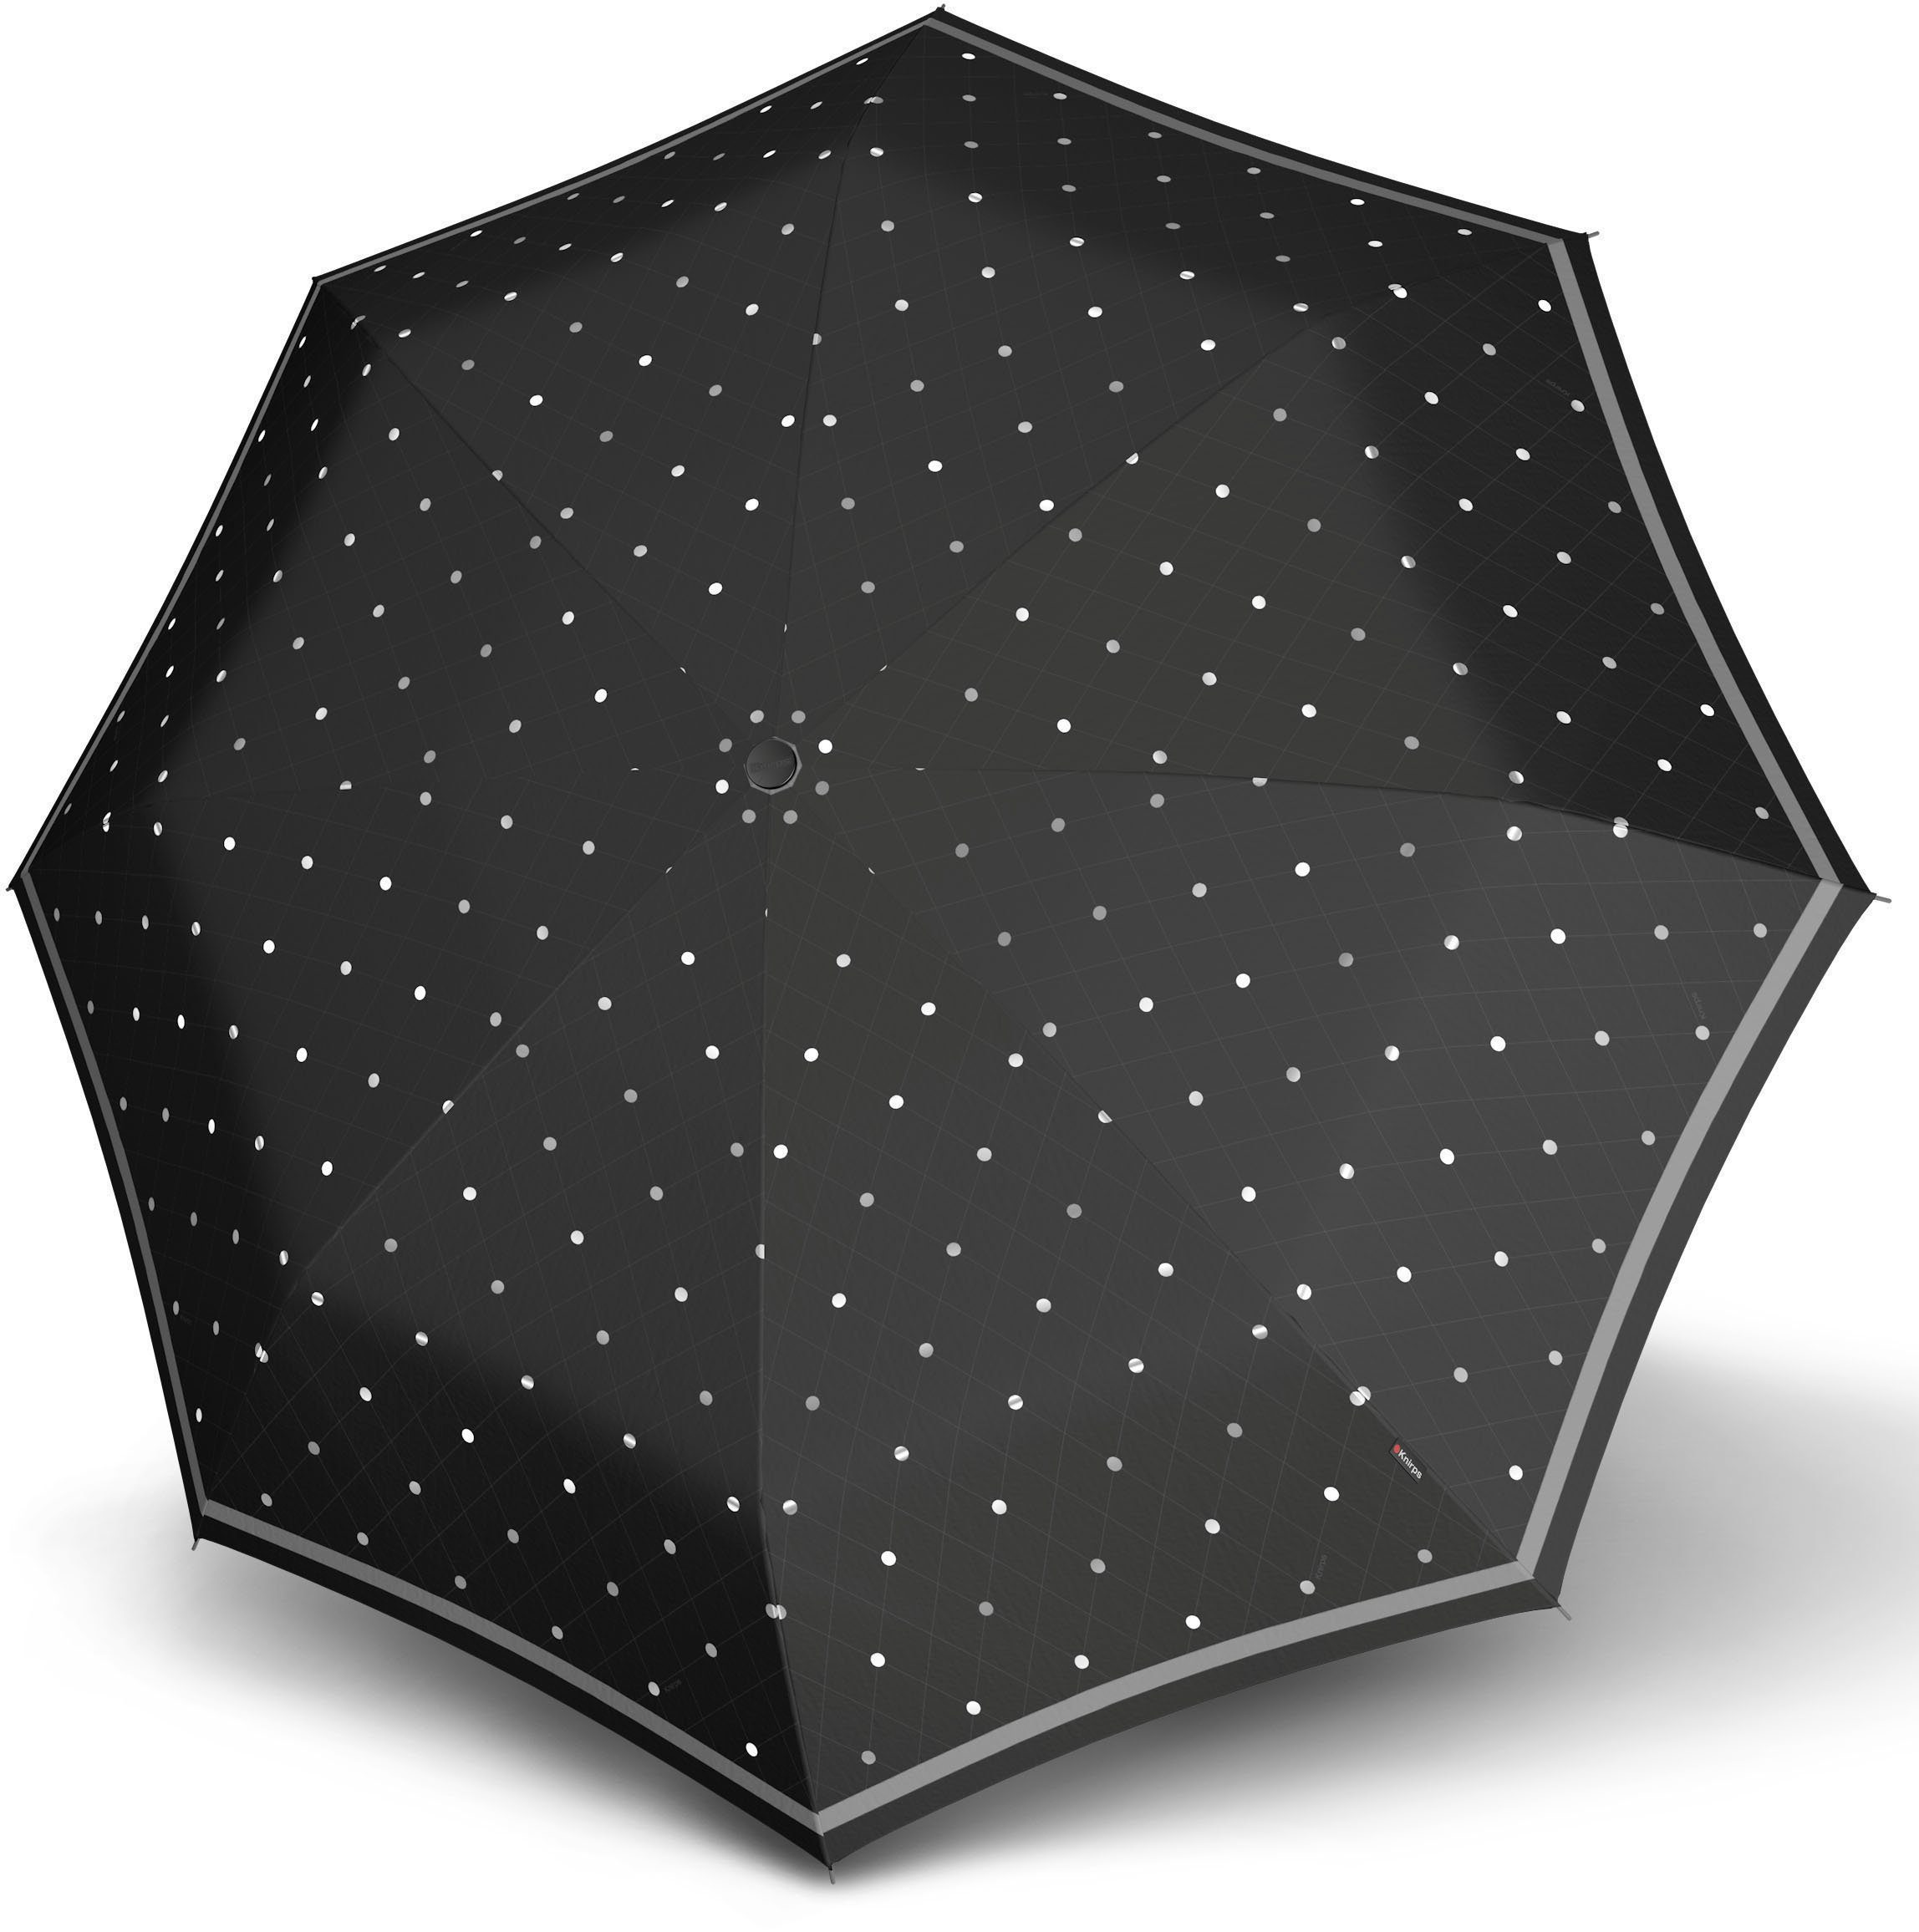 Knirps® Regenschirm, »Stockschirm Stick Long AC reflective dots«